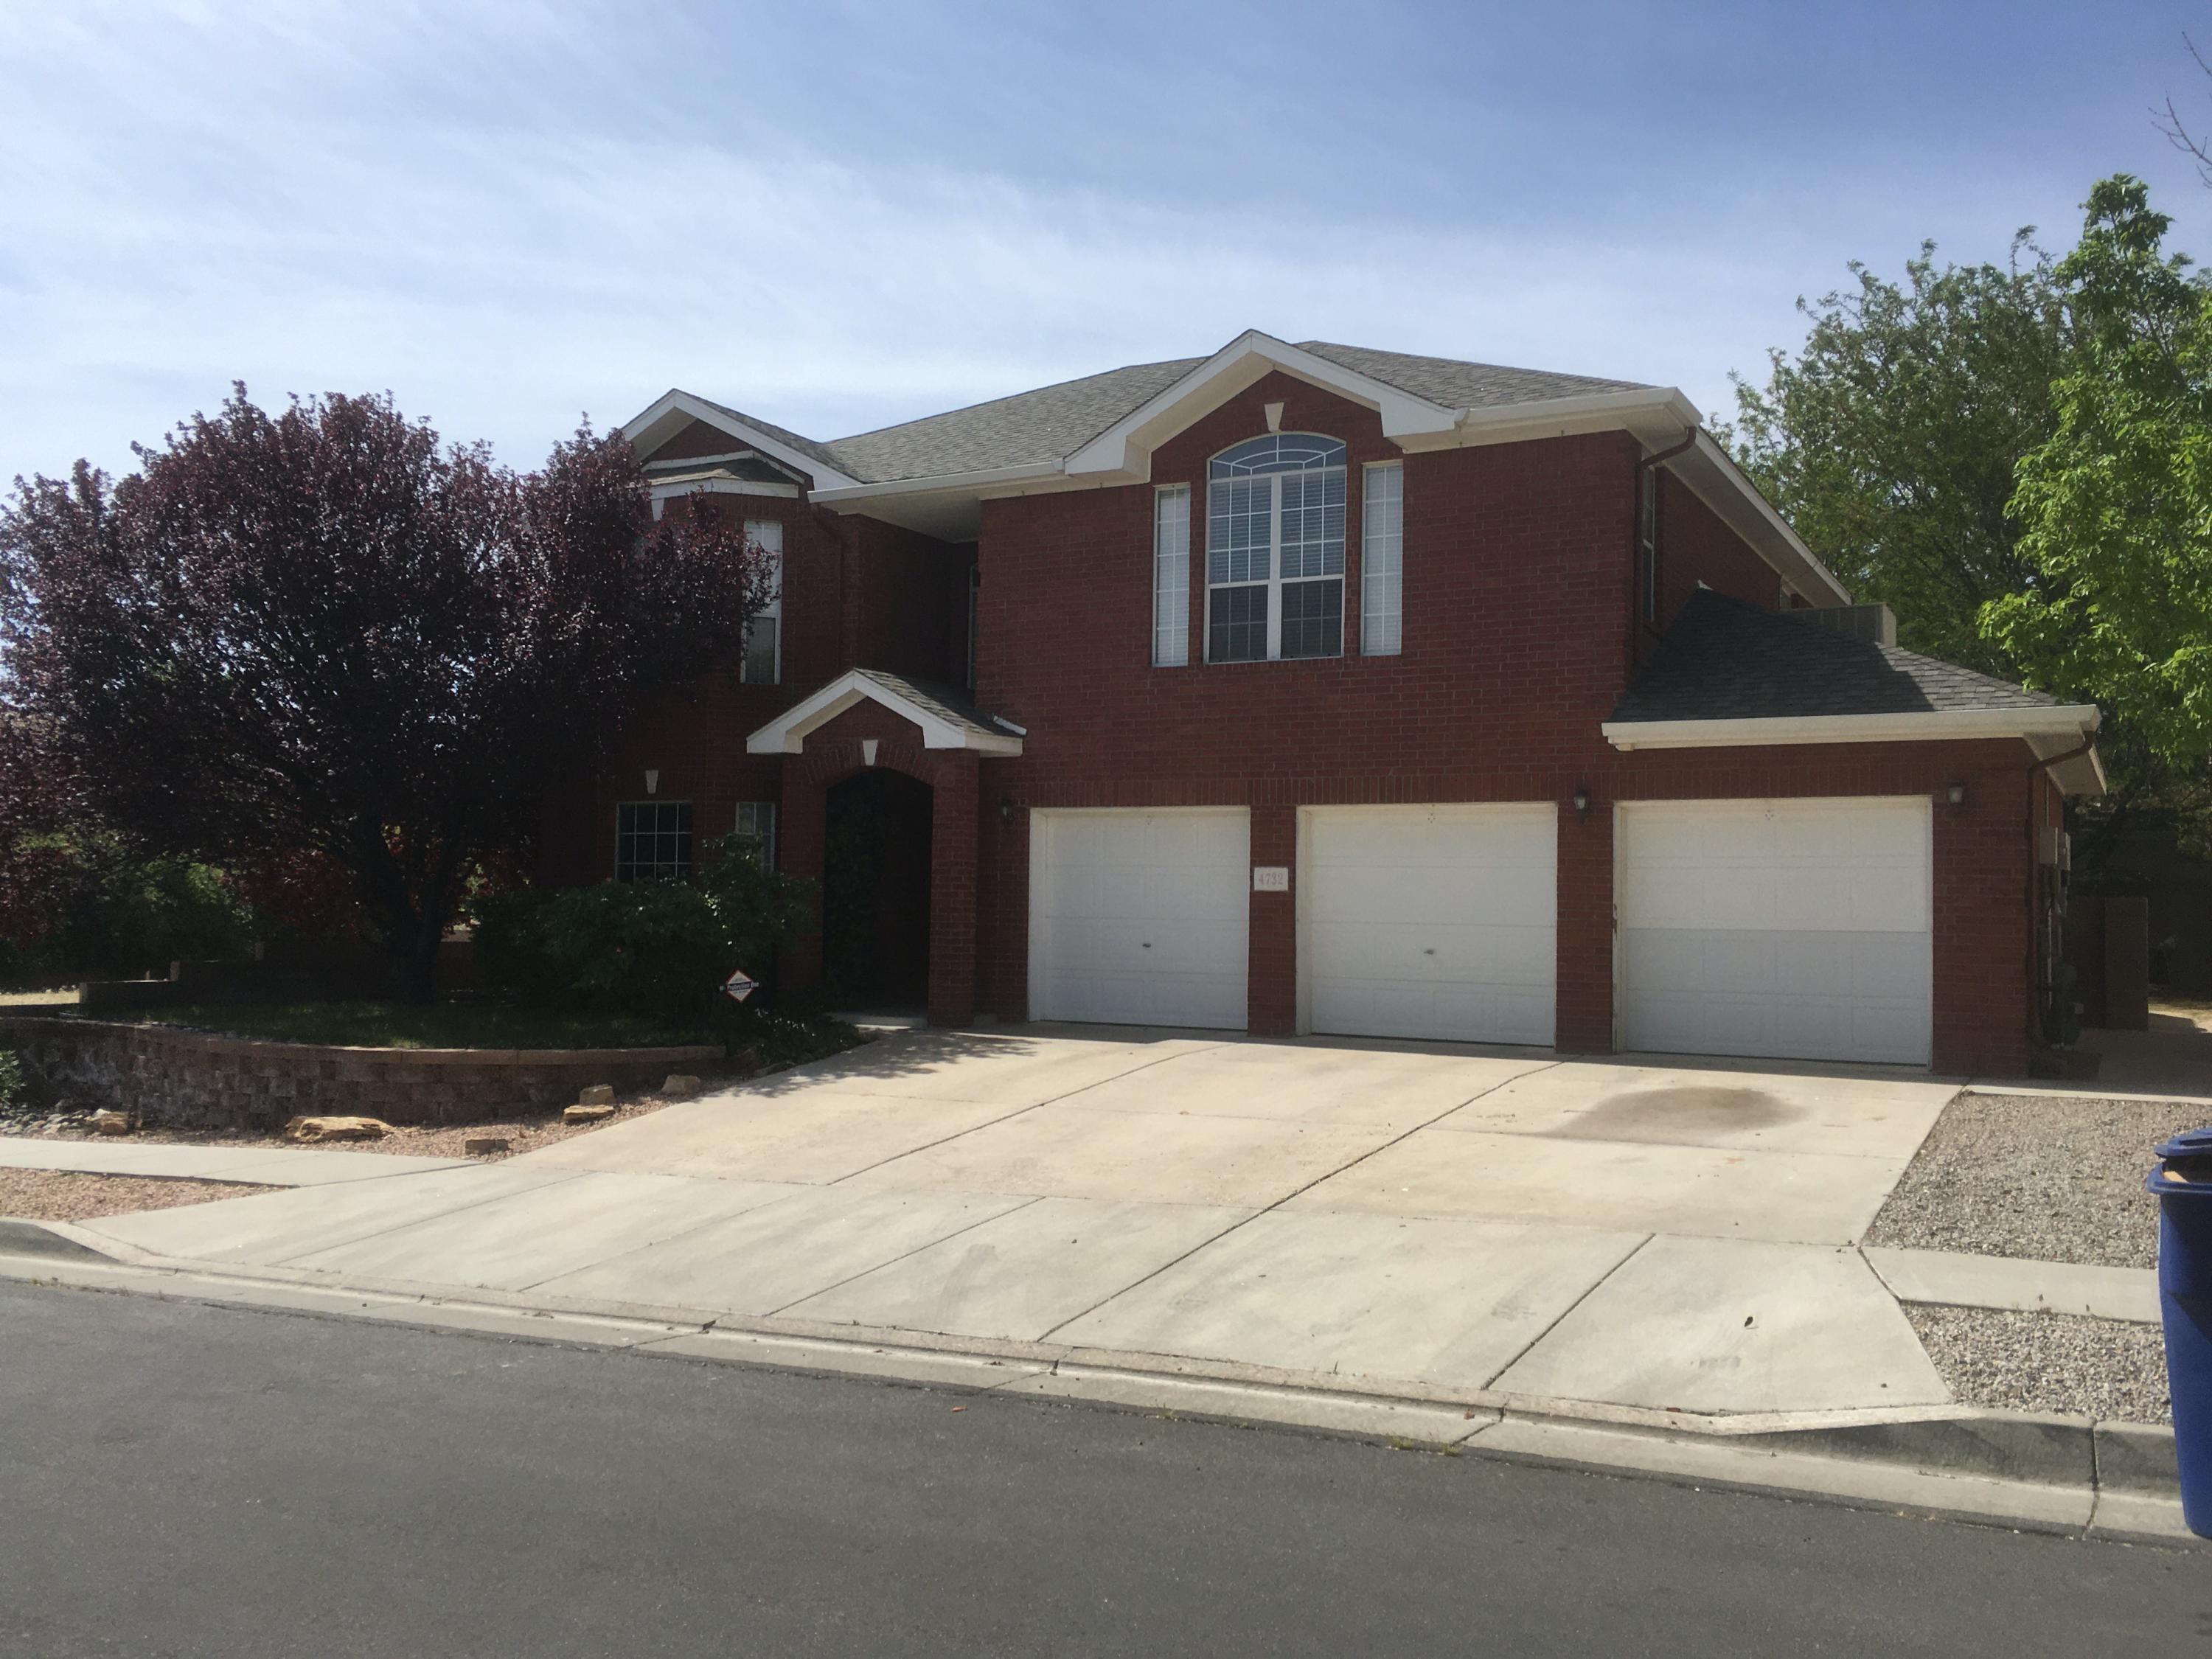 4732 SANDPOINT Road NW, Albuquerque, NM 87114 - Albuquerque, NM real estate listing